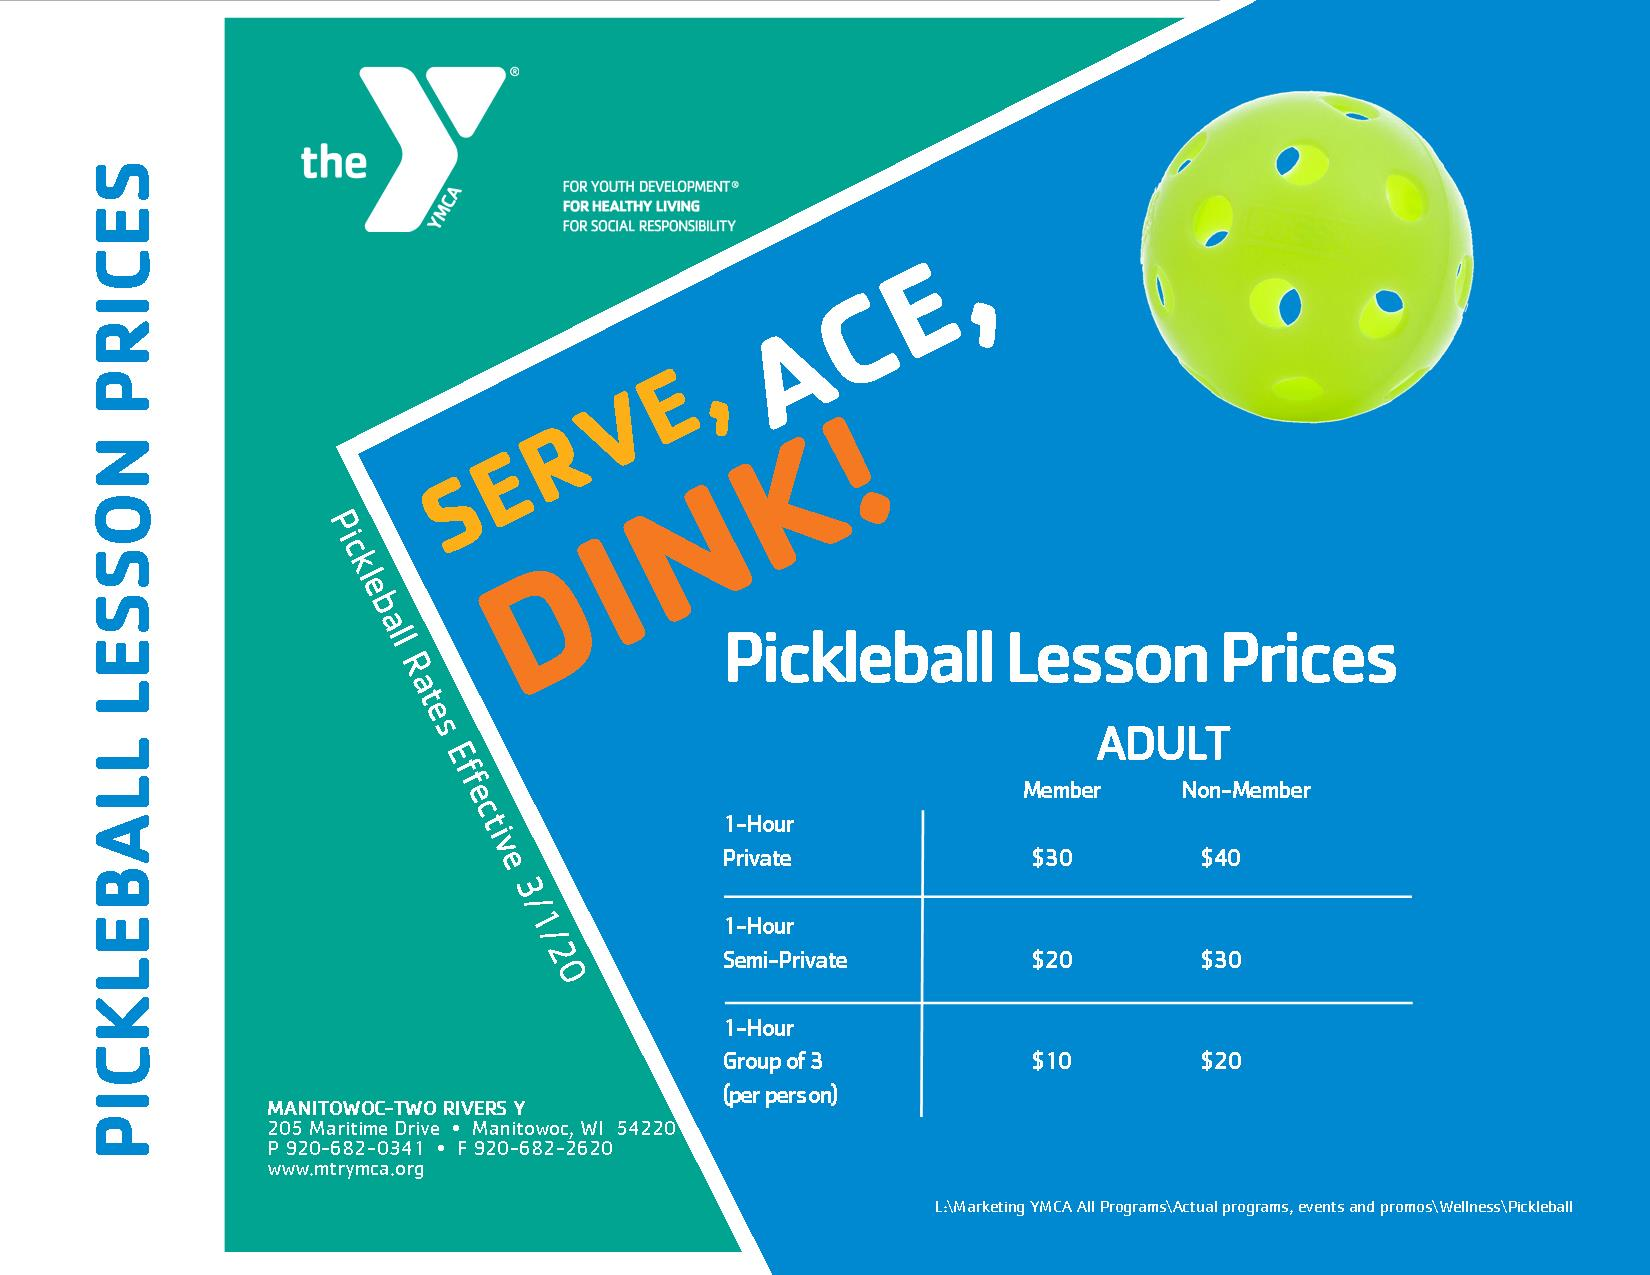 http://mtrymca.org/sites/mtrymca.org/assets/images/programs/Pickleball-Lesson-Prices.jpg